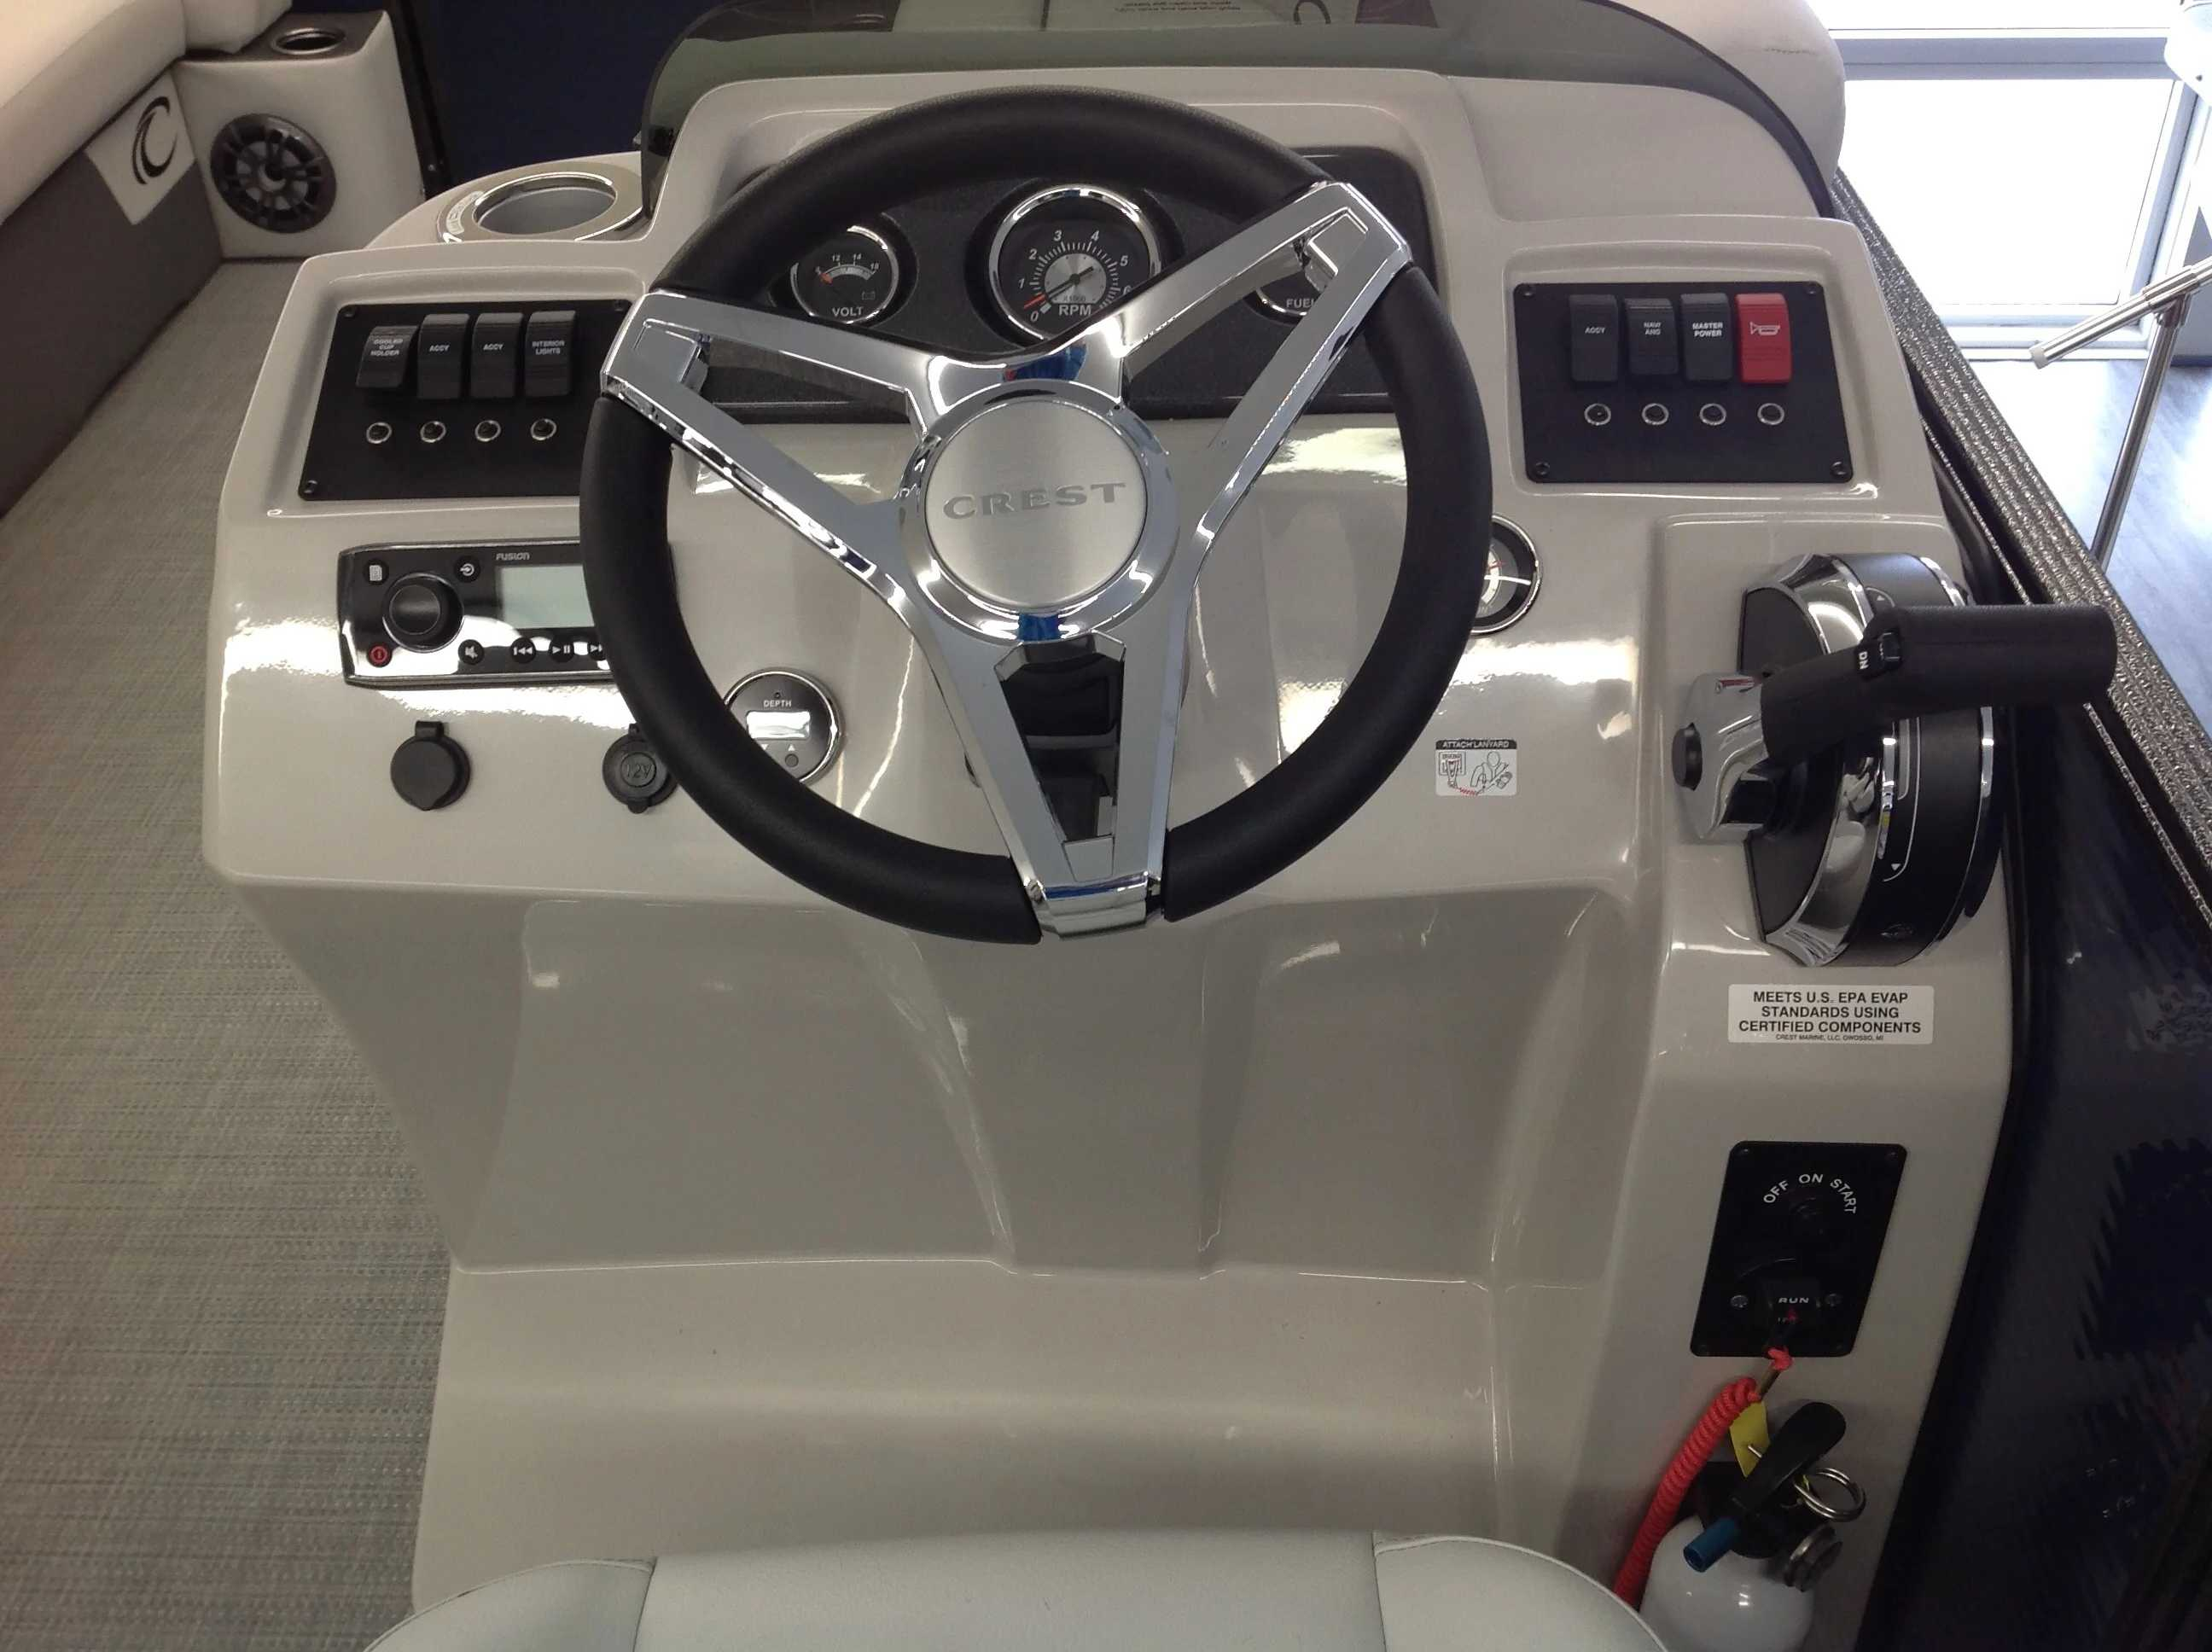 2021 Crest boat for sale, model of the boat is Cl Lx 220slc & Image # 7 of 13